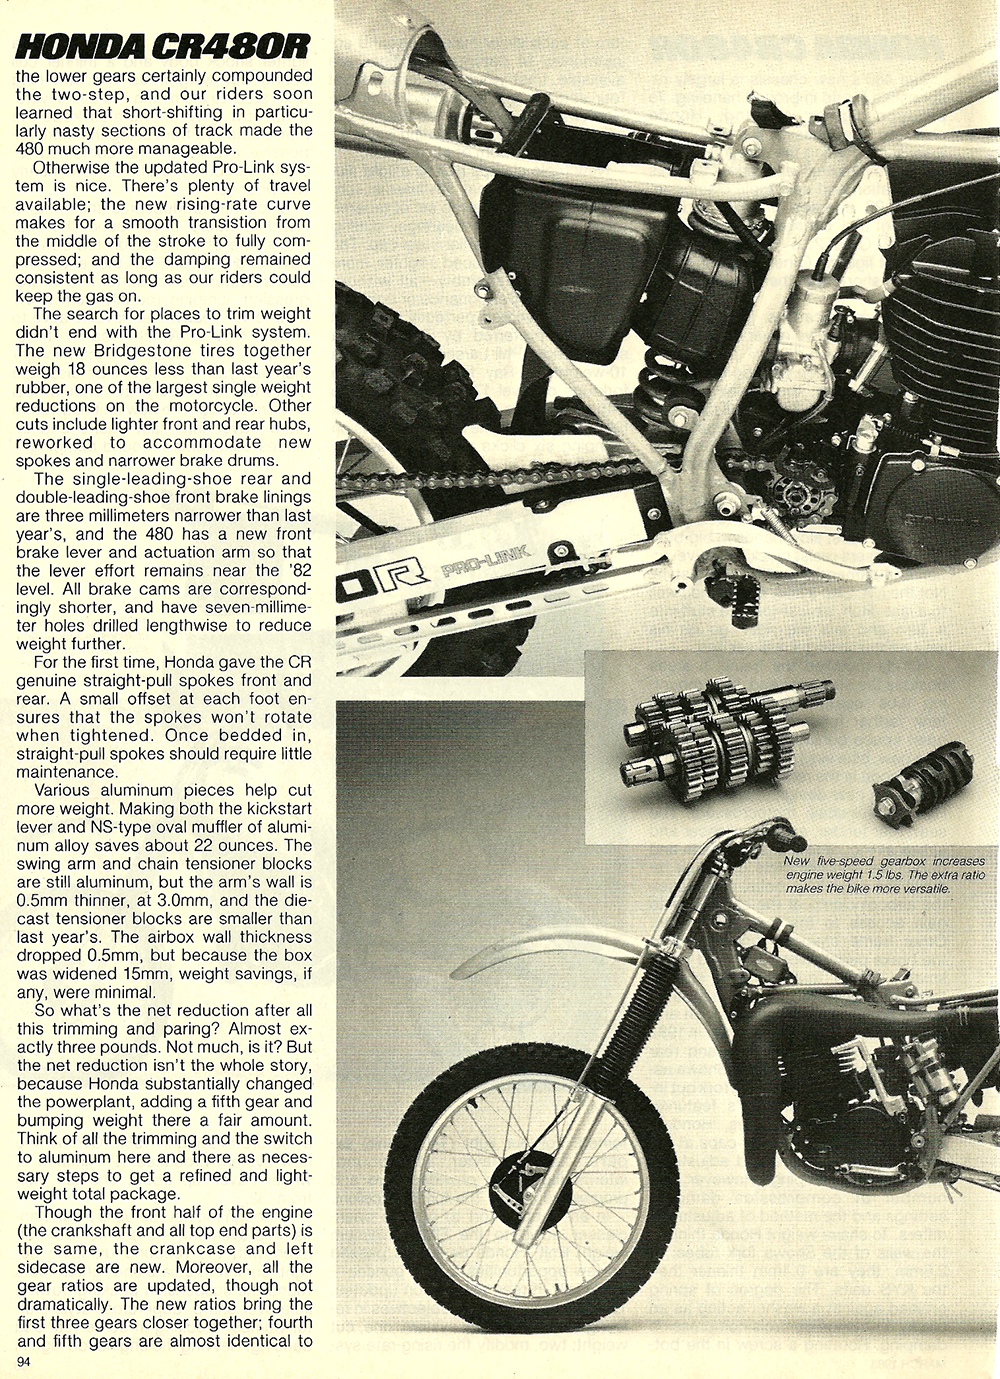 1983 Honda CR480R road test 5.jpg